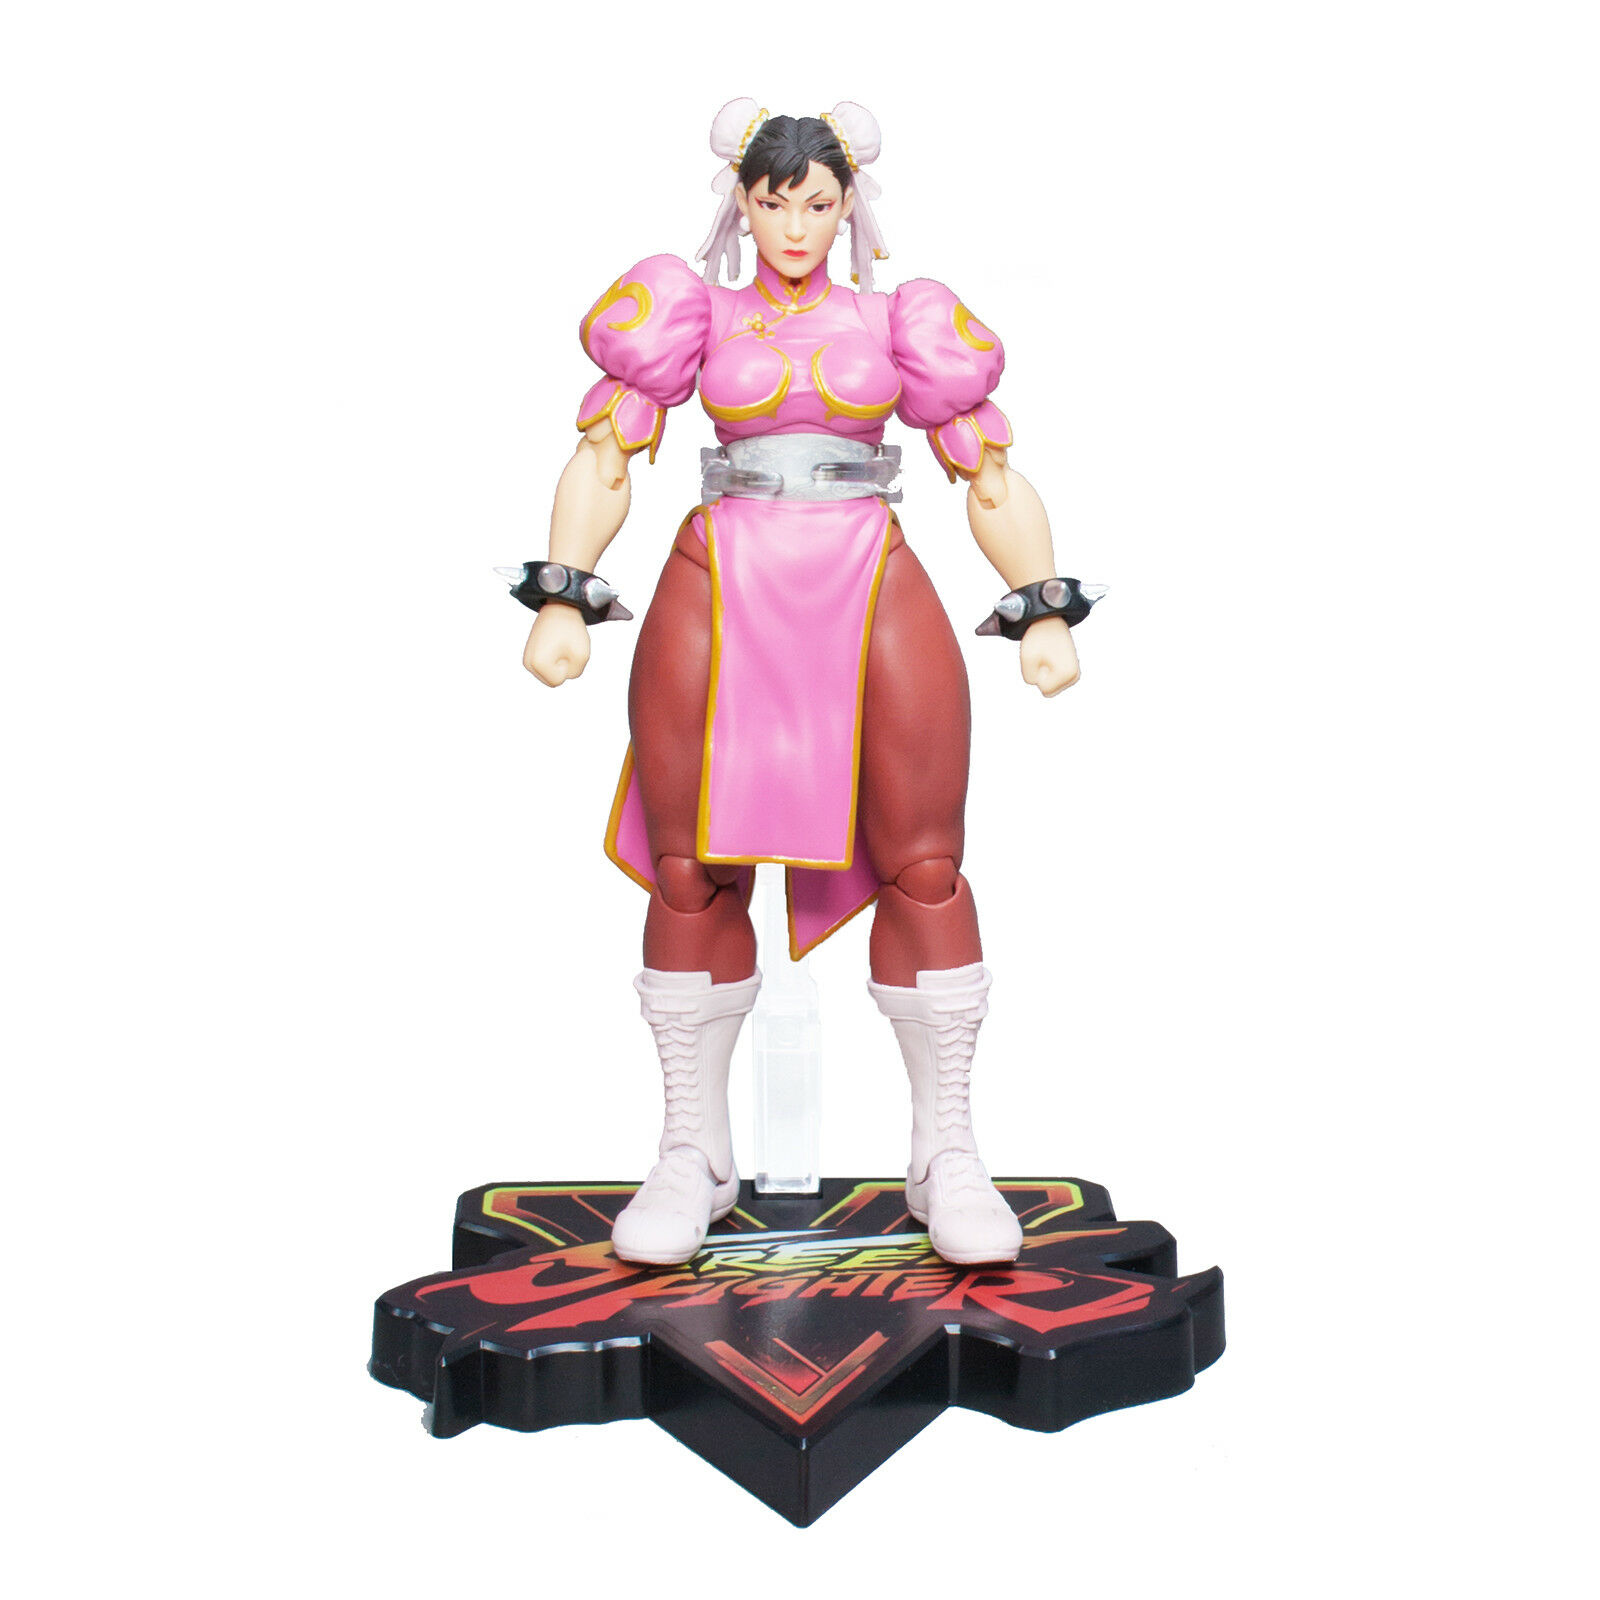 Storm Collectibles STREET FIGHTER V Chun-Li édition spéciale 7 in (environ 17.78 cm) Action Figure